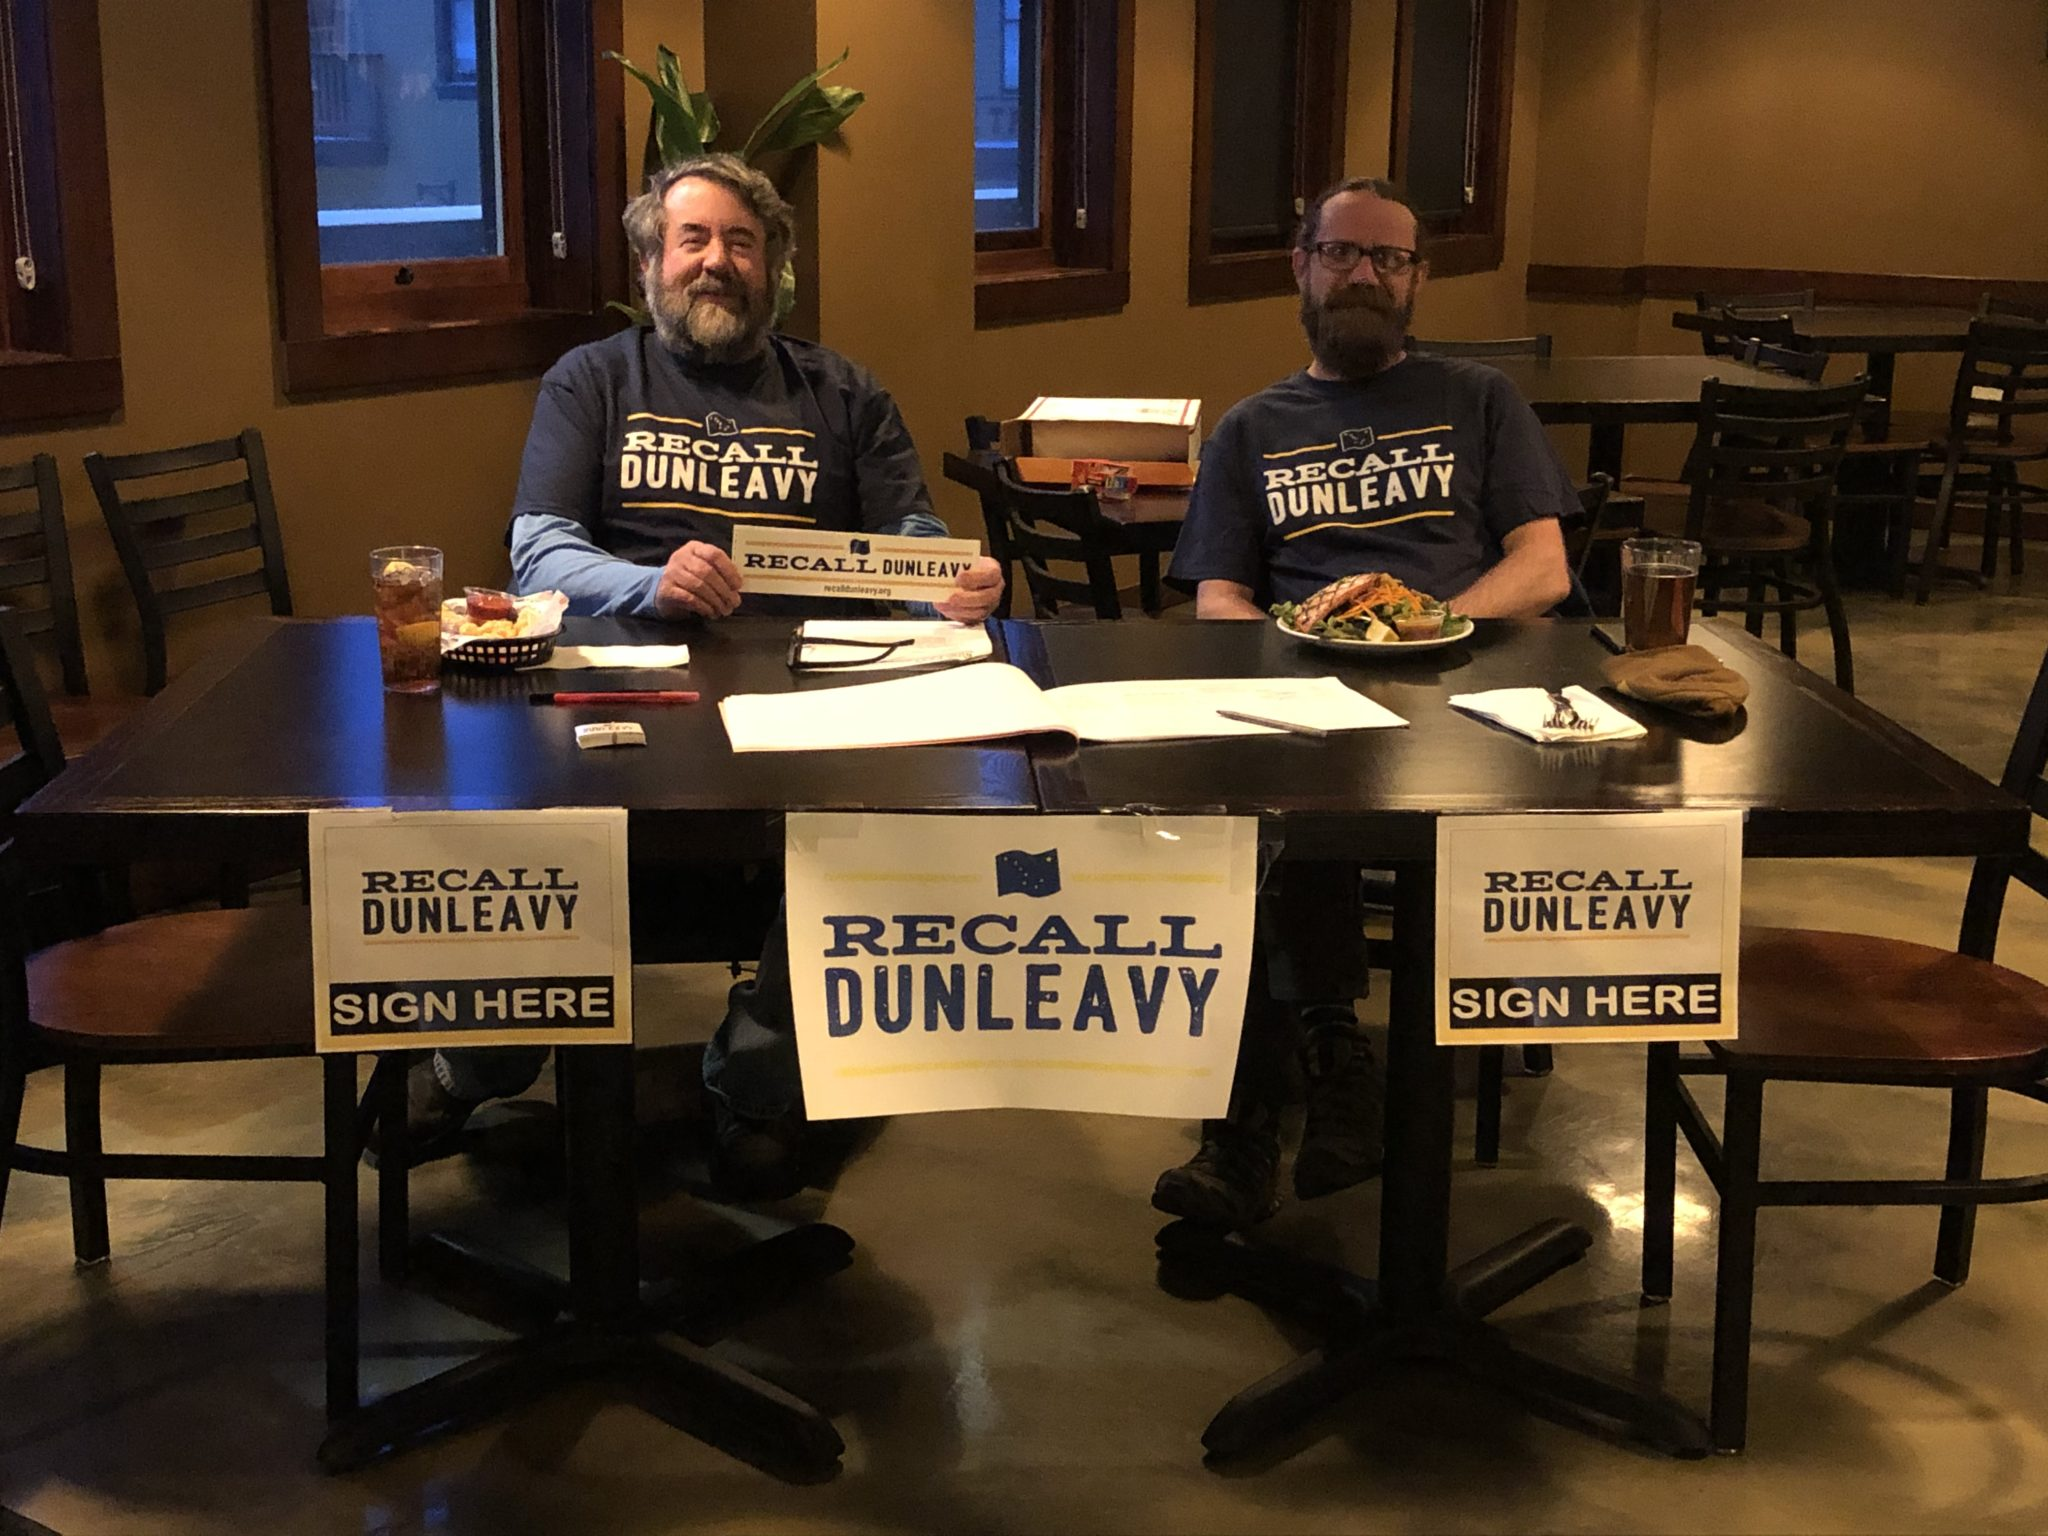 Recall Dunleavy campaign switches to mail-in signatures amid COVID-19